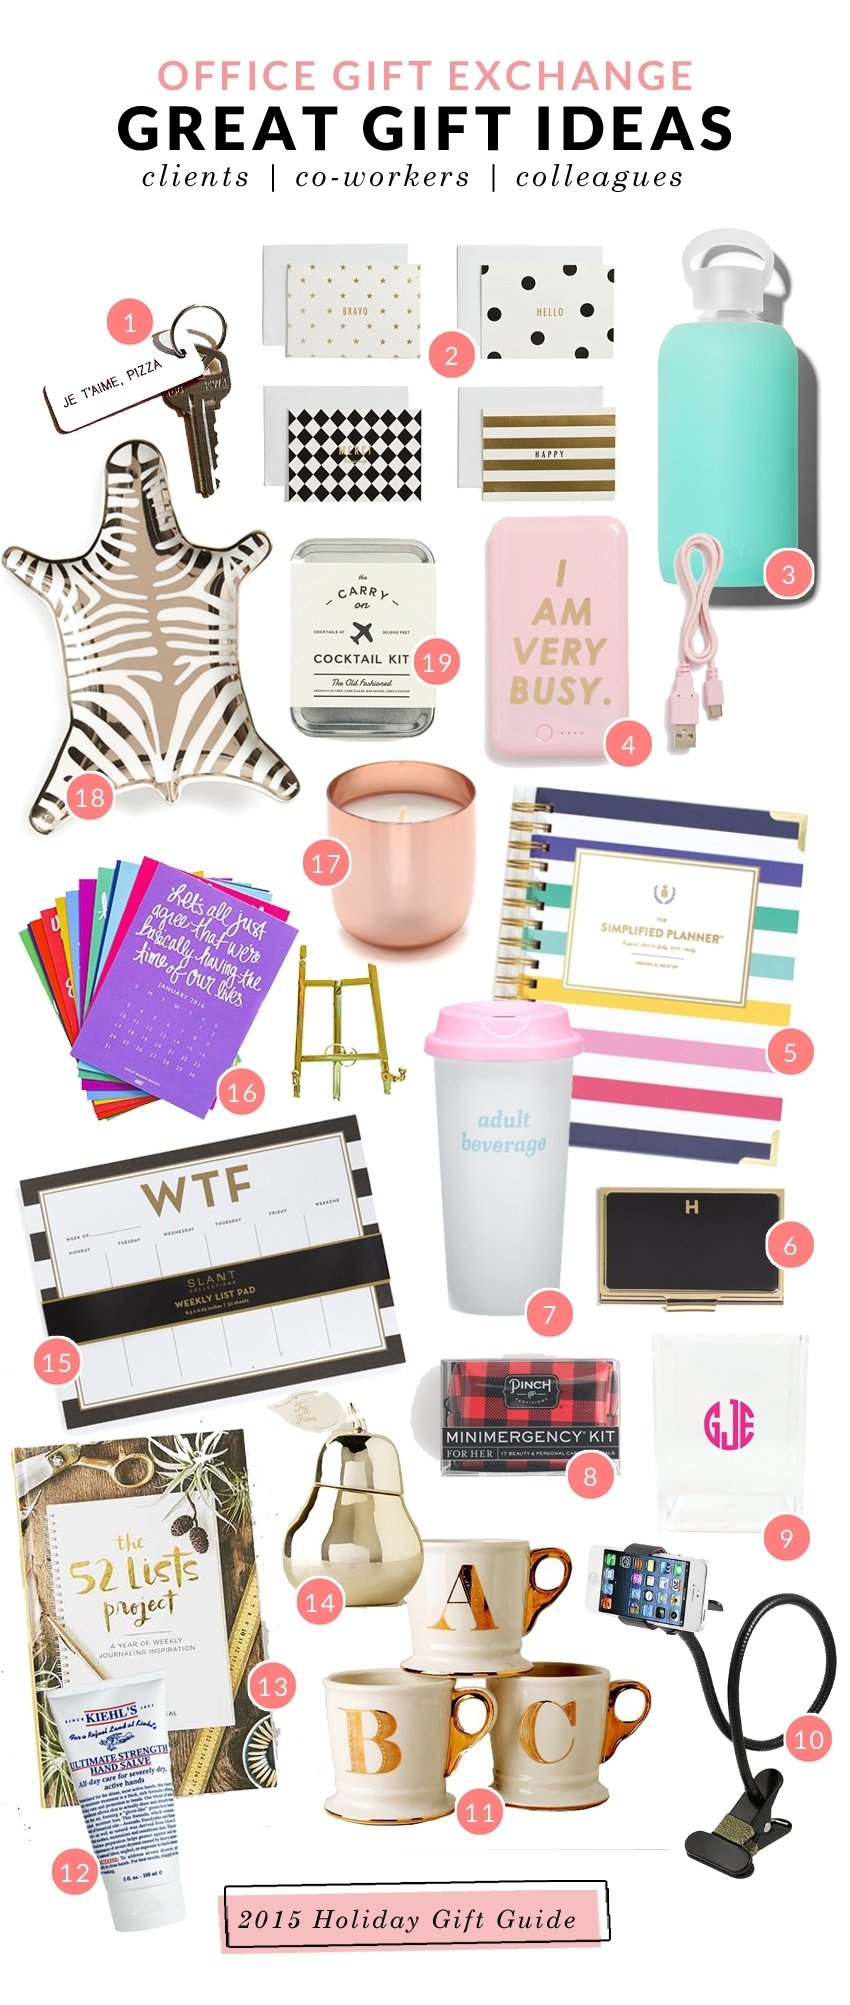 10 Lovely Gift Ideas For Gift Exchange great secret santa gift ideas for co workers or clients 4